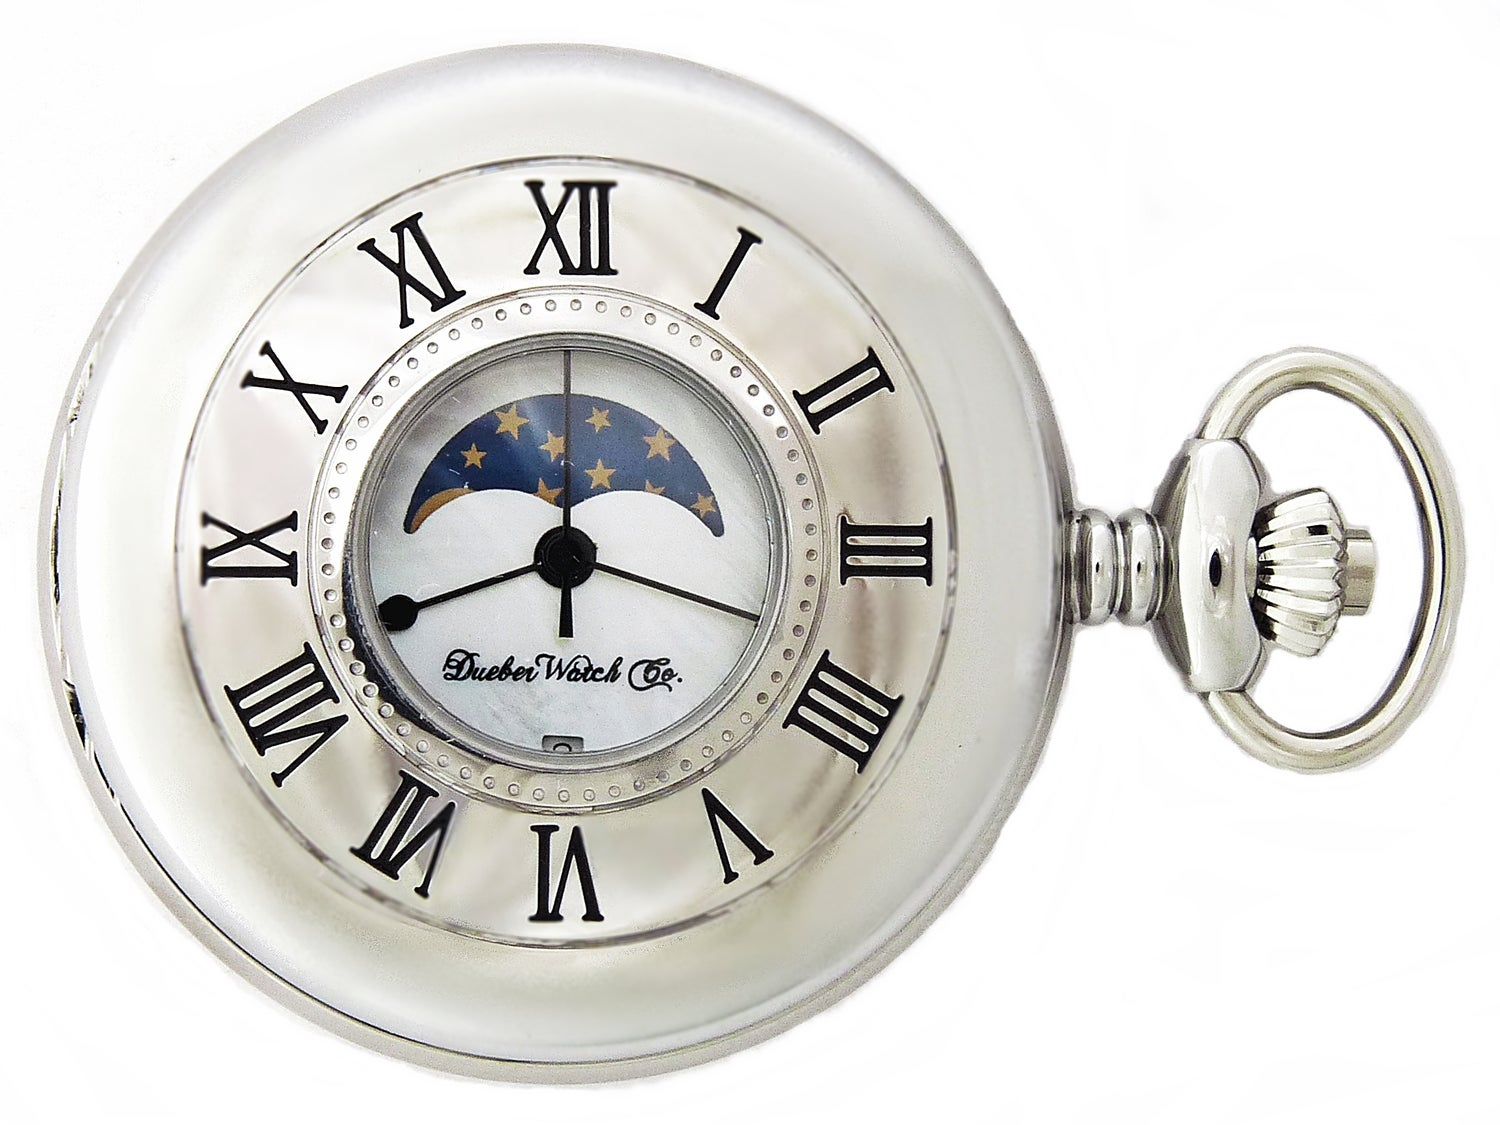 Image of Dueber Pocket Watch, Genuine Mother of Pearl Dial, with Moon Phase, Chrome Plated Steel Case 342-241